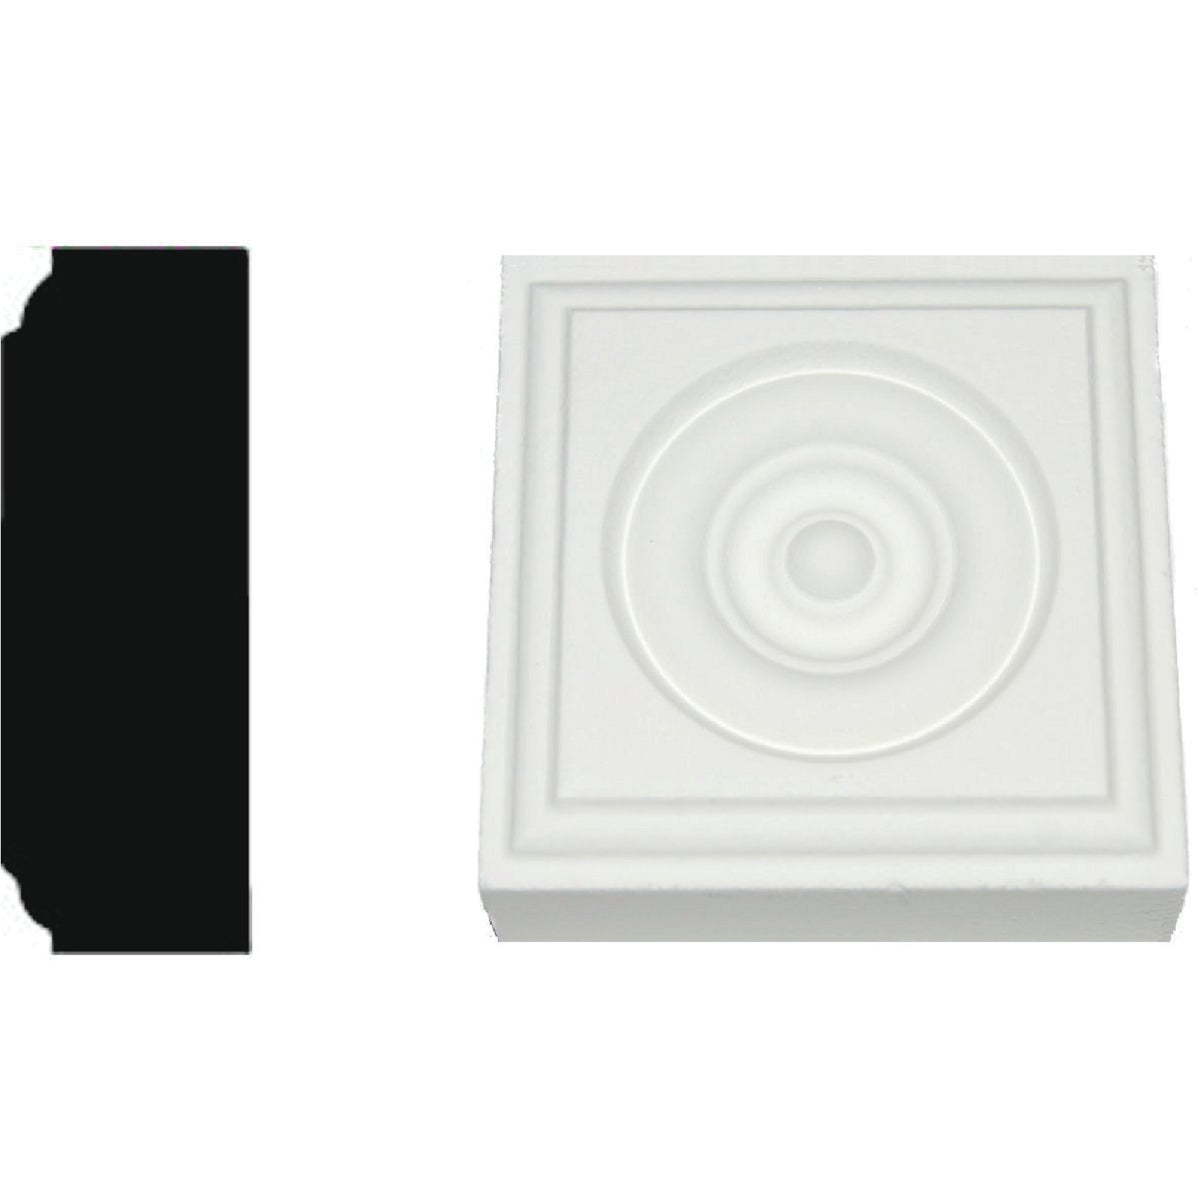 7/8X2-1/2 MDF ROSETTE - R90MDF by House Of Fara Inc